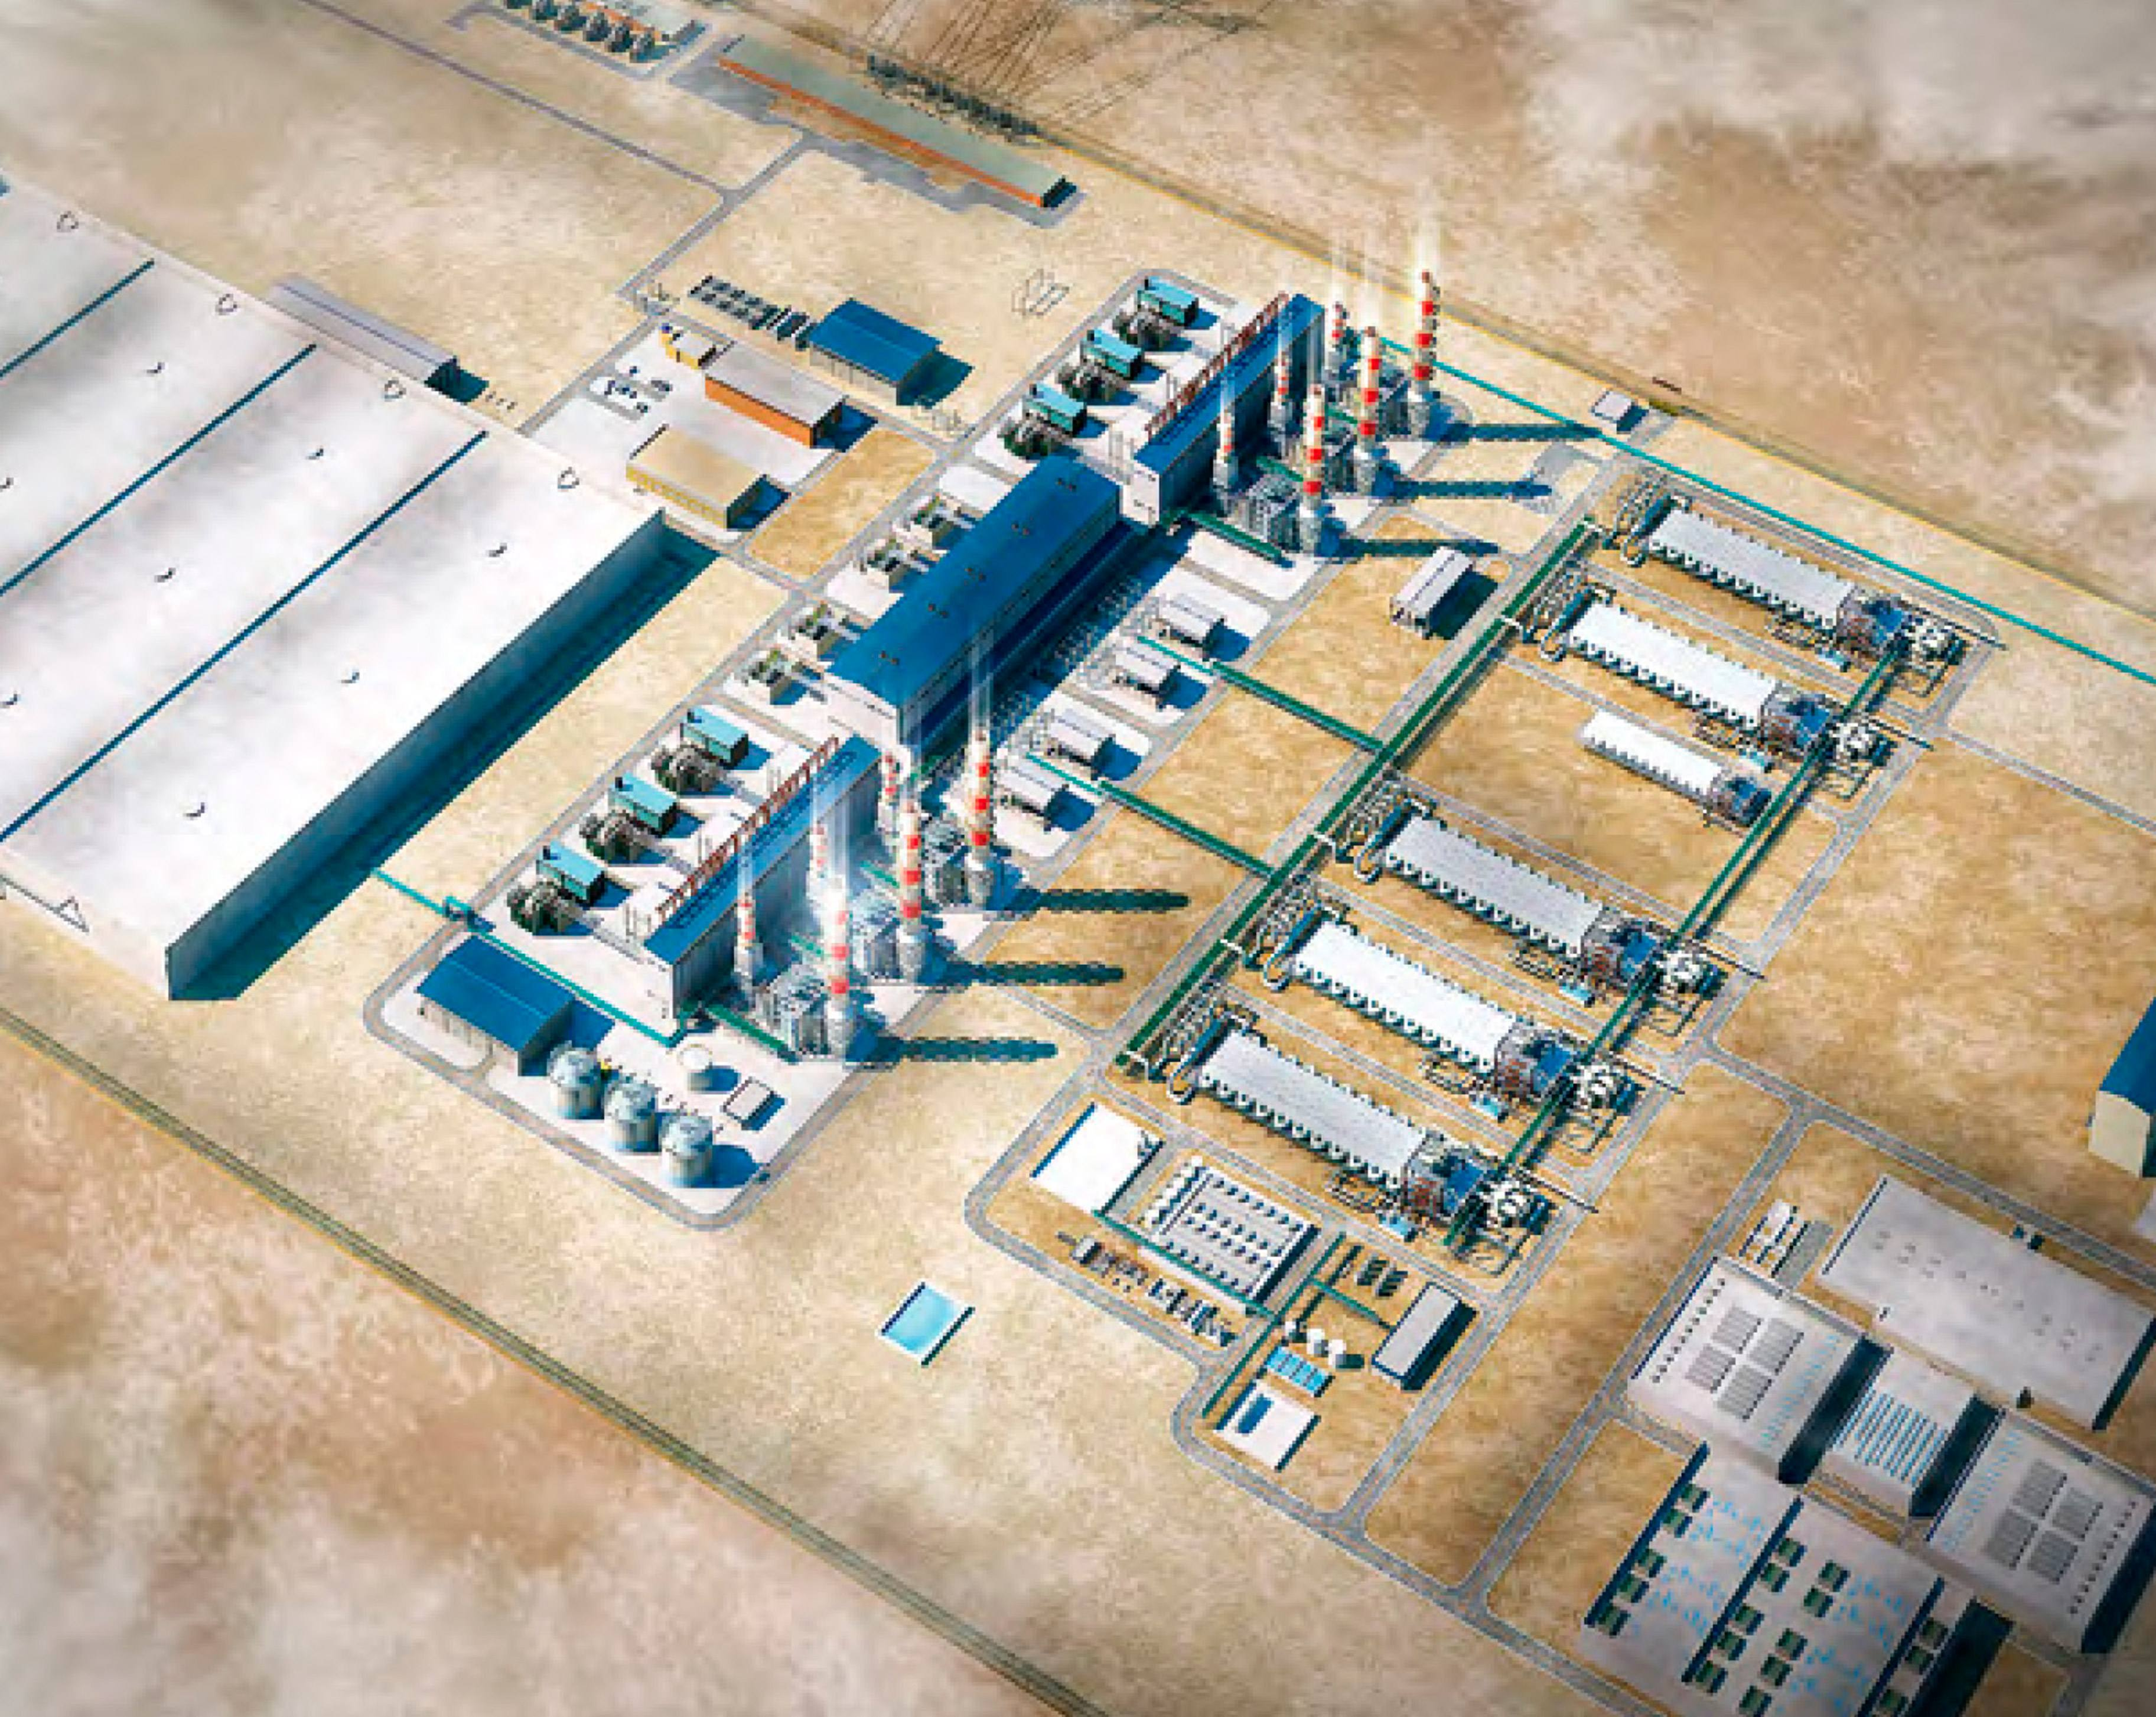 A new era for desalination in the Middle East